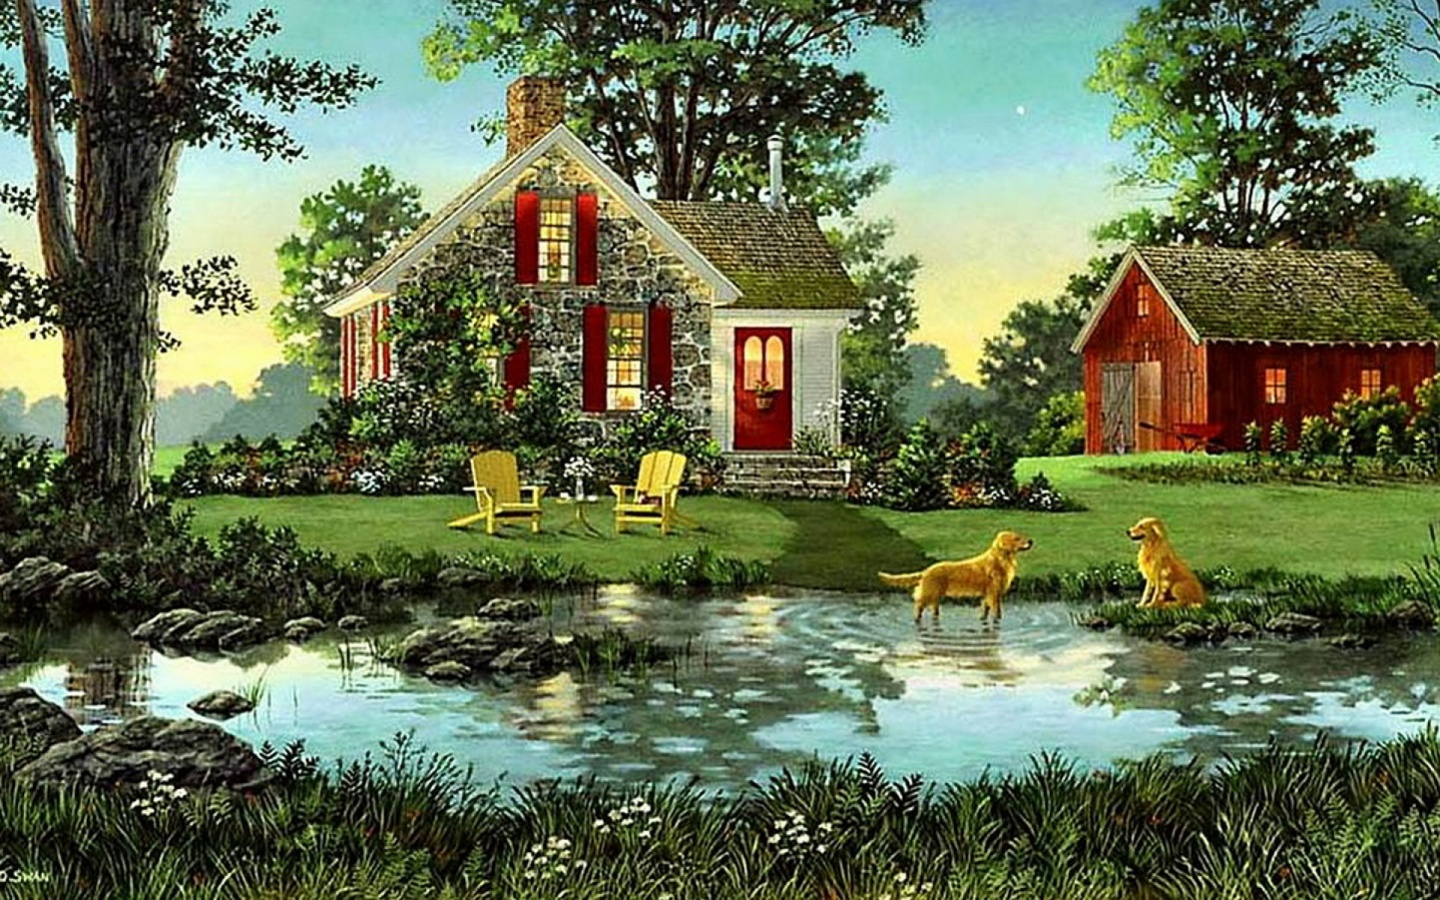 1440x900 House Shed Dogs Pond Nature. 1440x900 House Shed Dogs Pond Nature desktop PC and Mac wallpaper